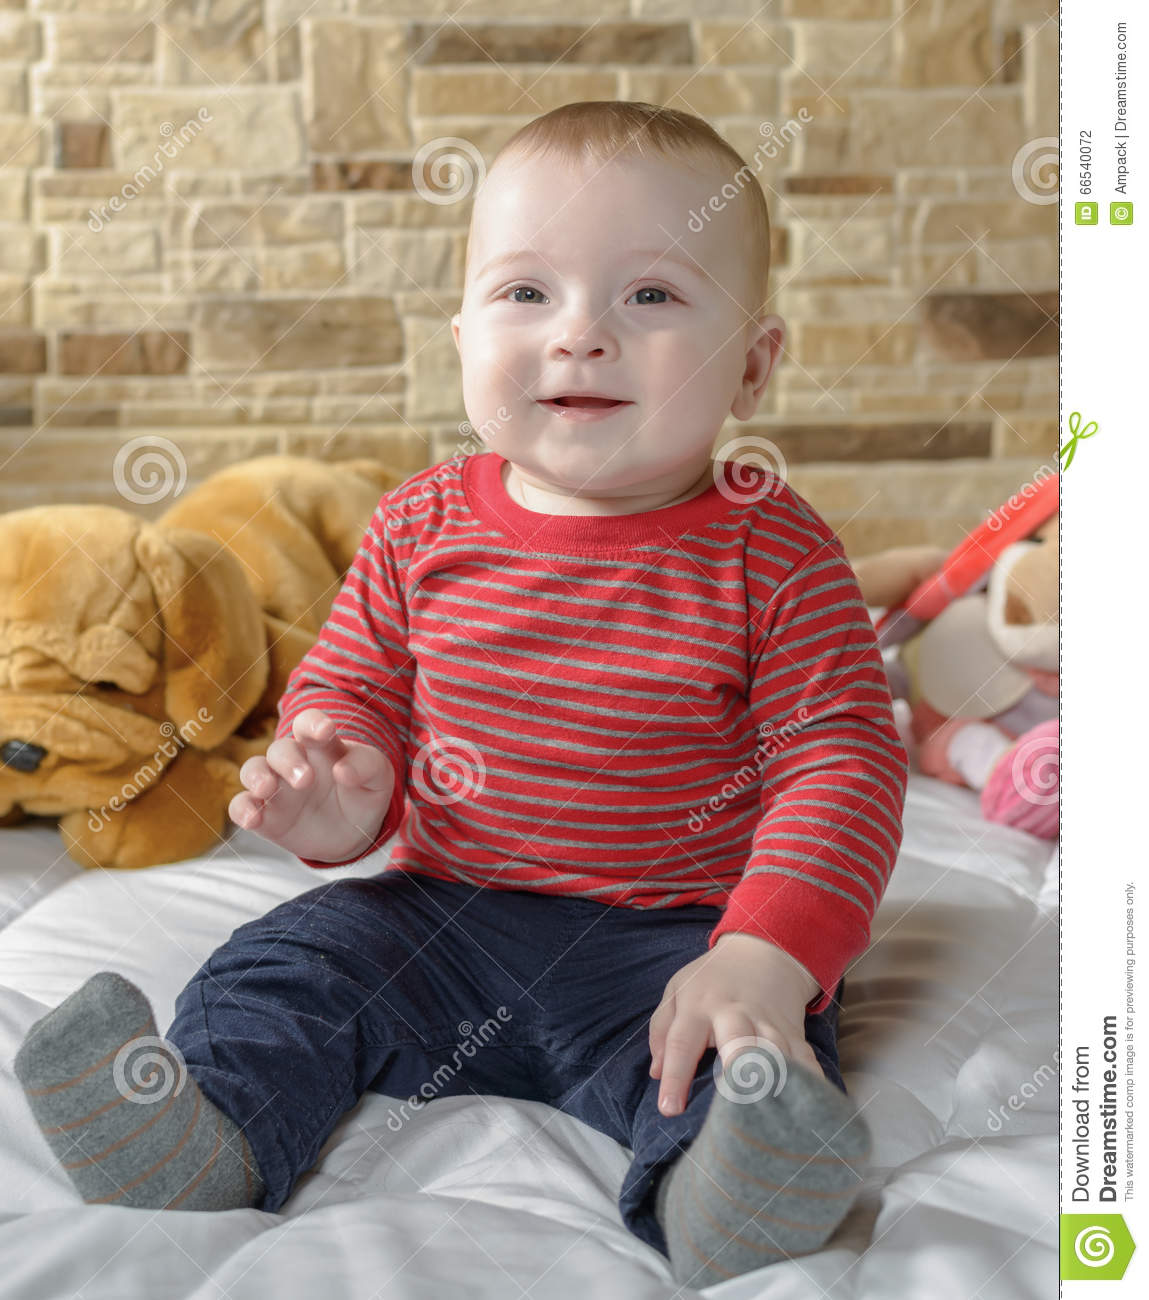 very beautiful cute baby boy home in bedroom stock photo - image of